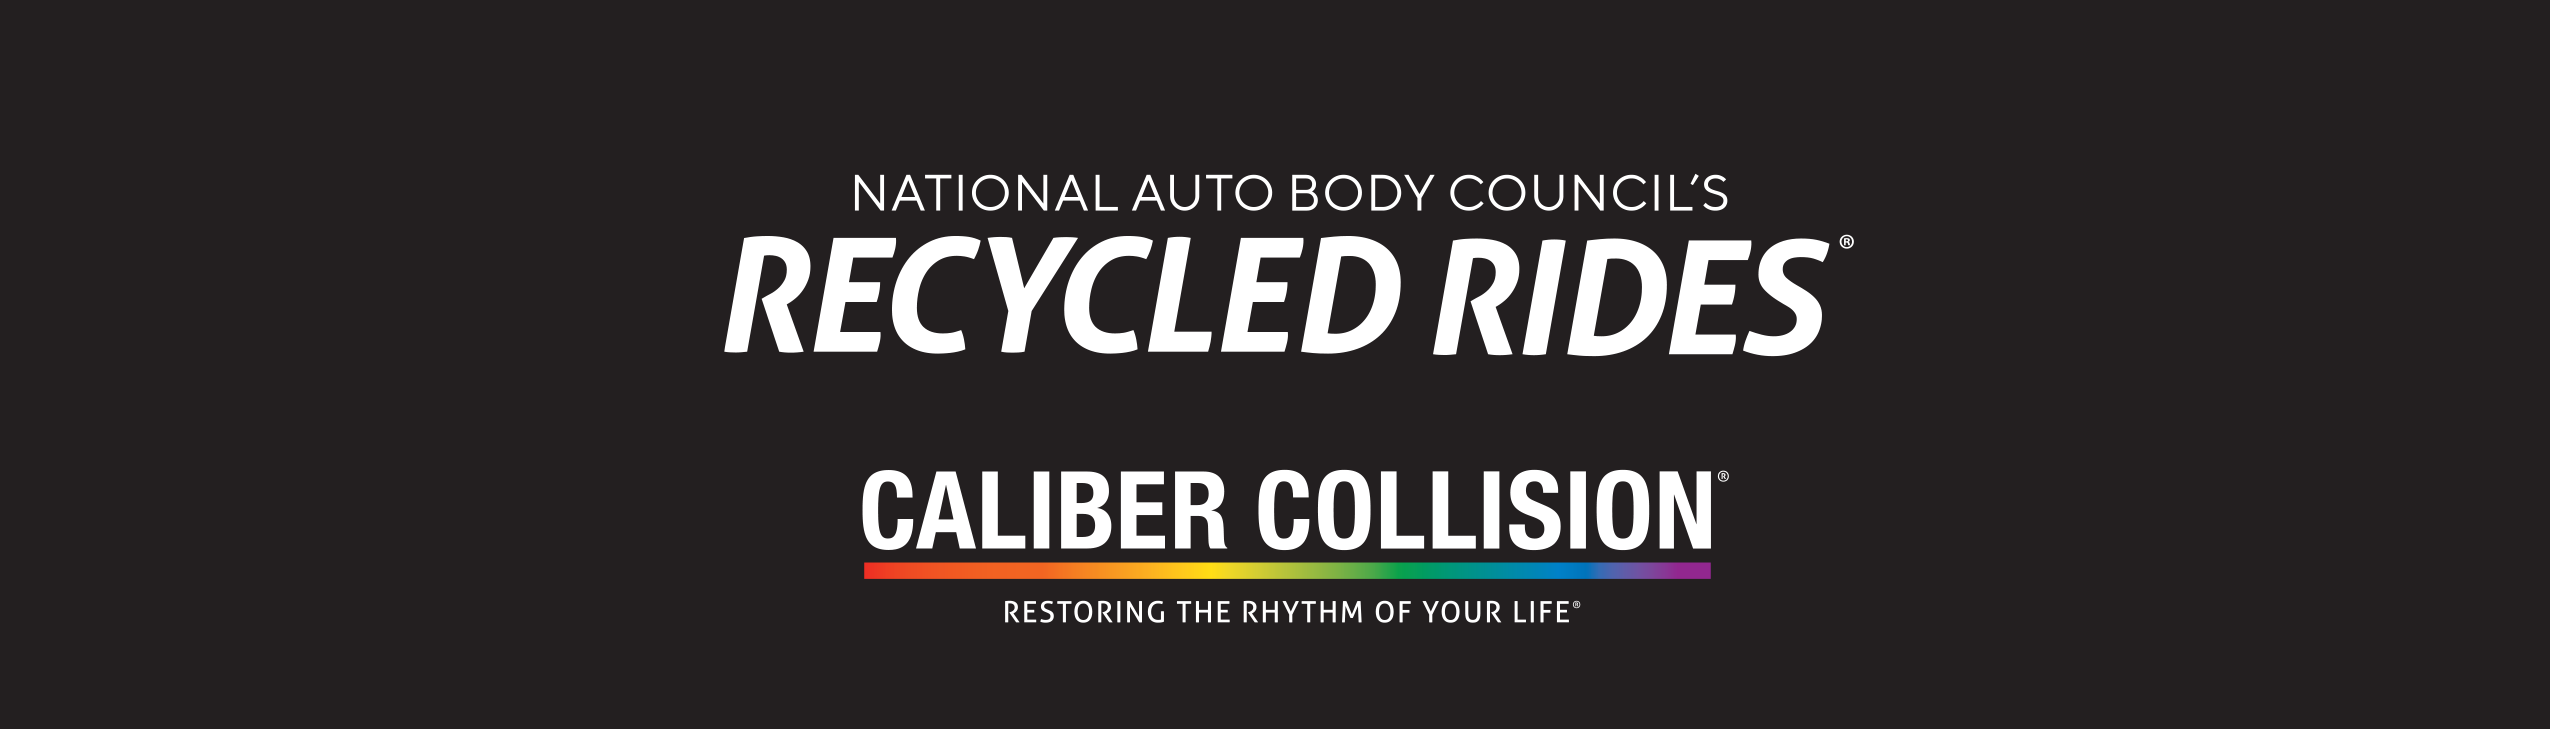 National Auto Body Council's Recycled Rides